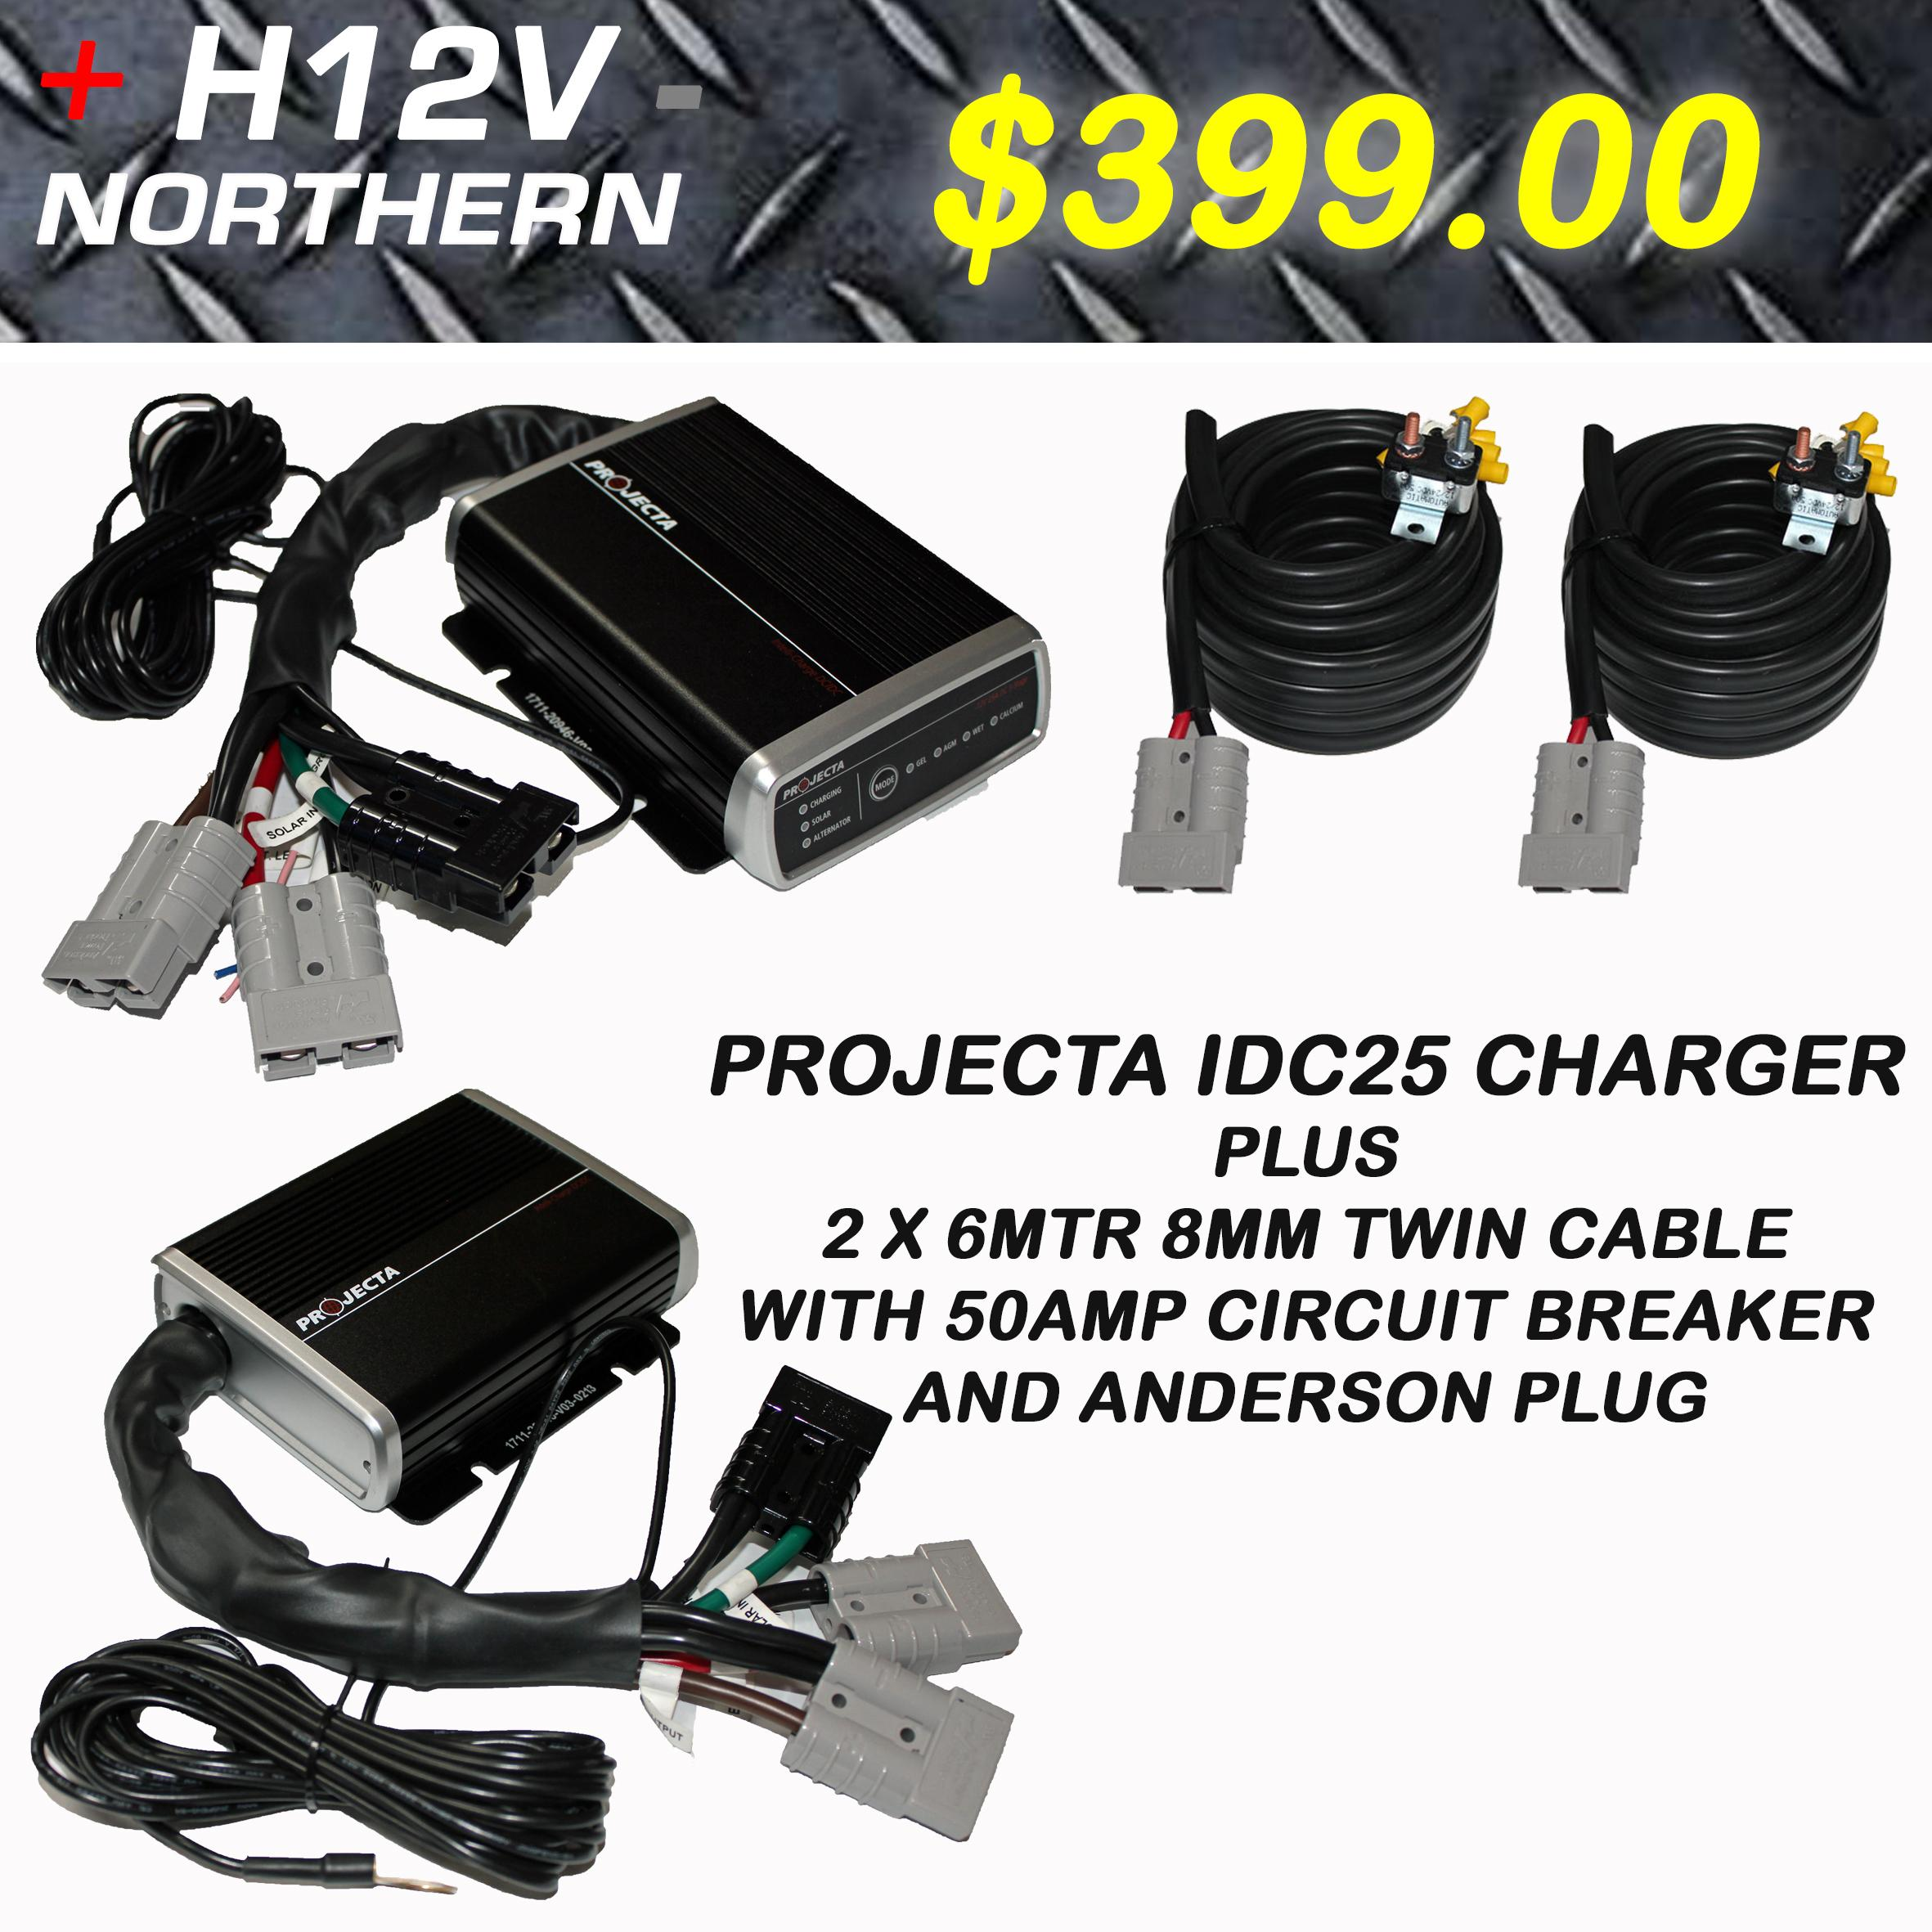 Projecta Idc25 Charger Anderson Quick Connect With 8mm Cable Package